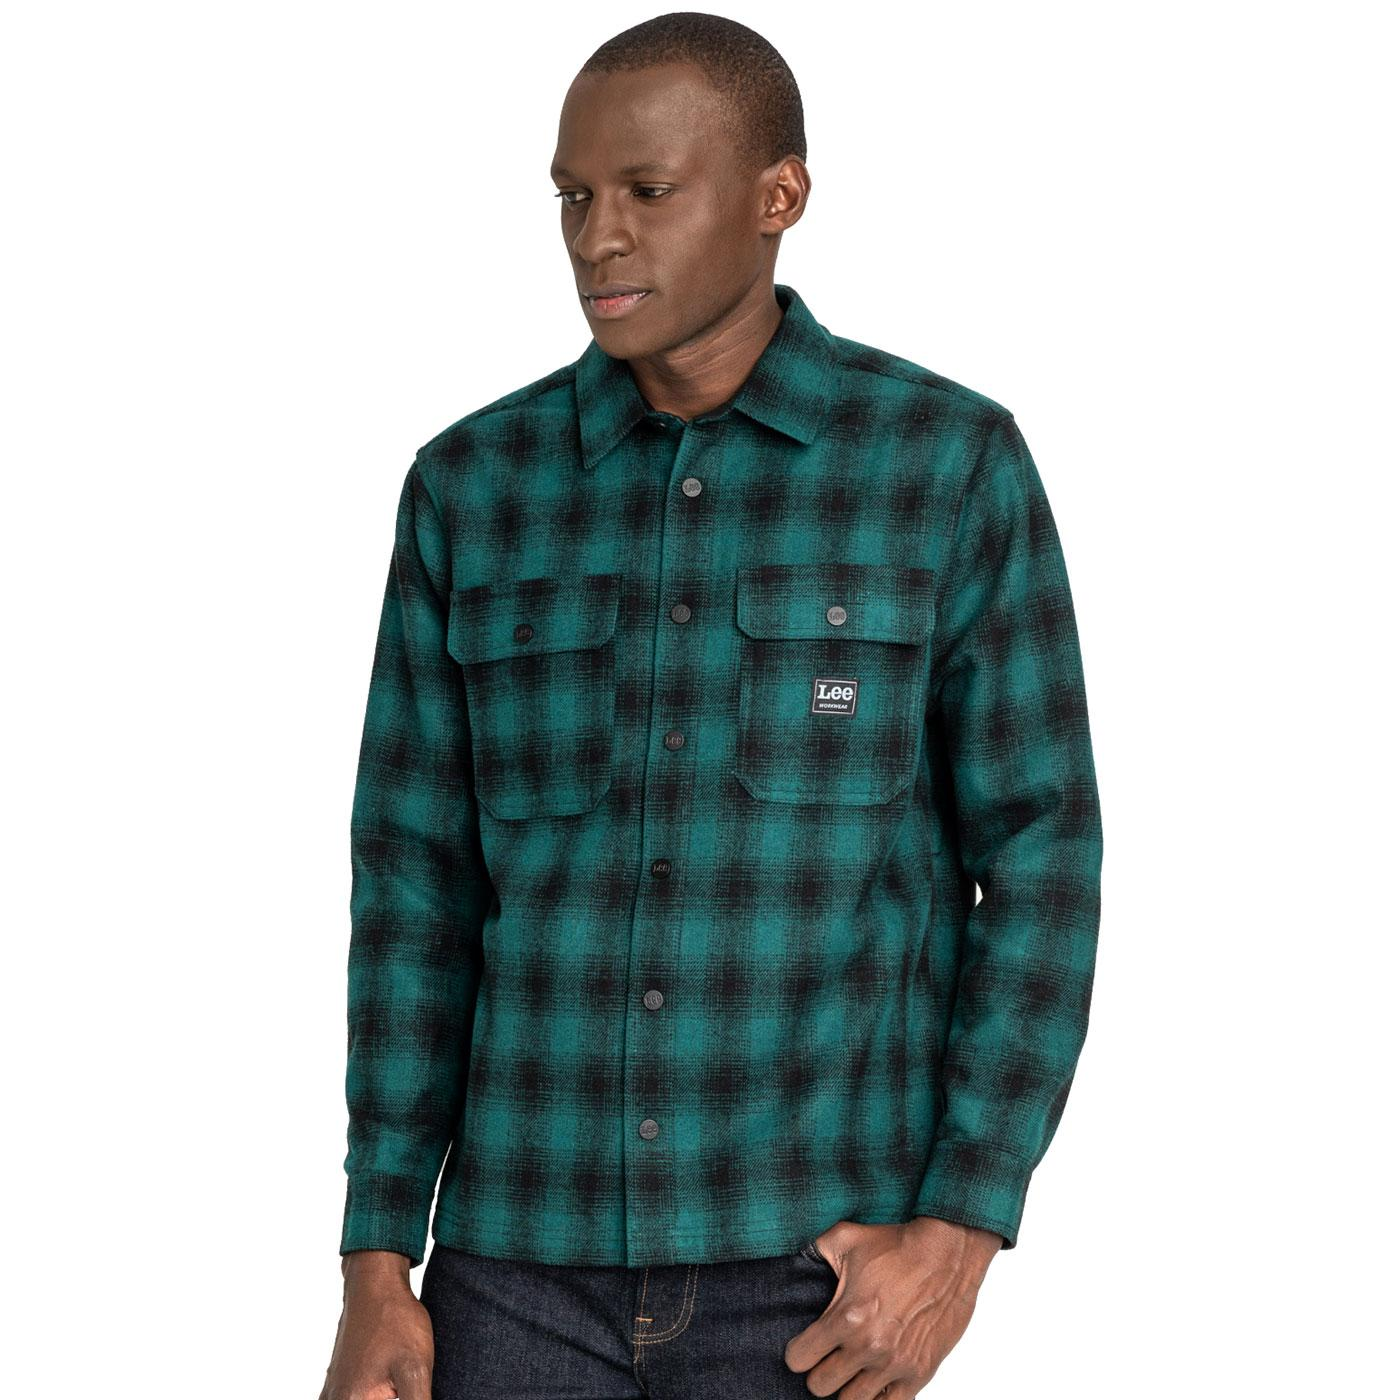 LEE JEANS Men's Retro Check Workwear Overshirt AG